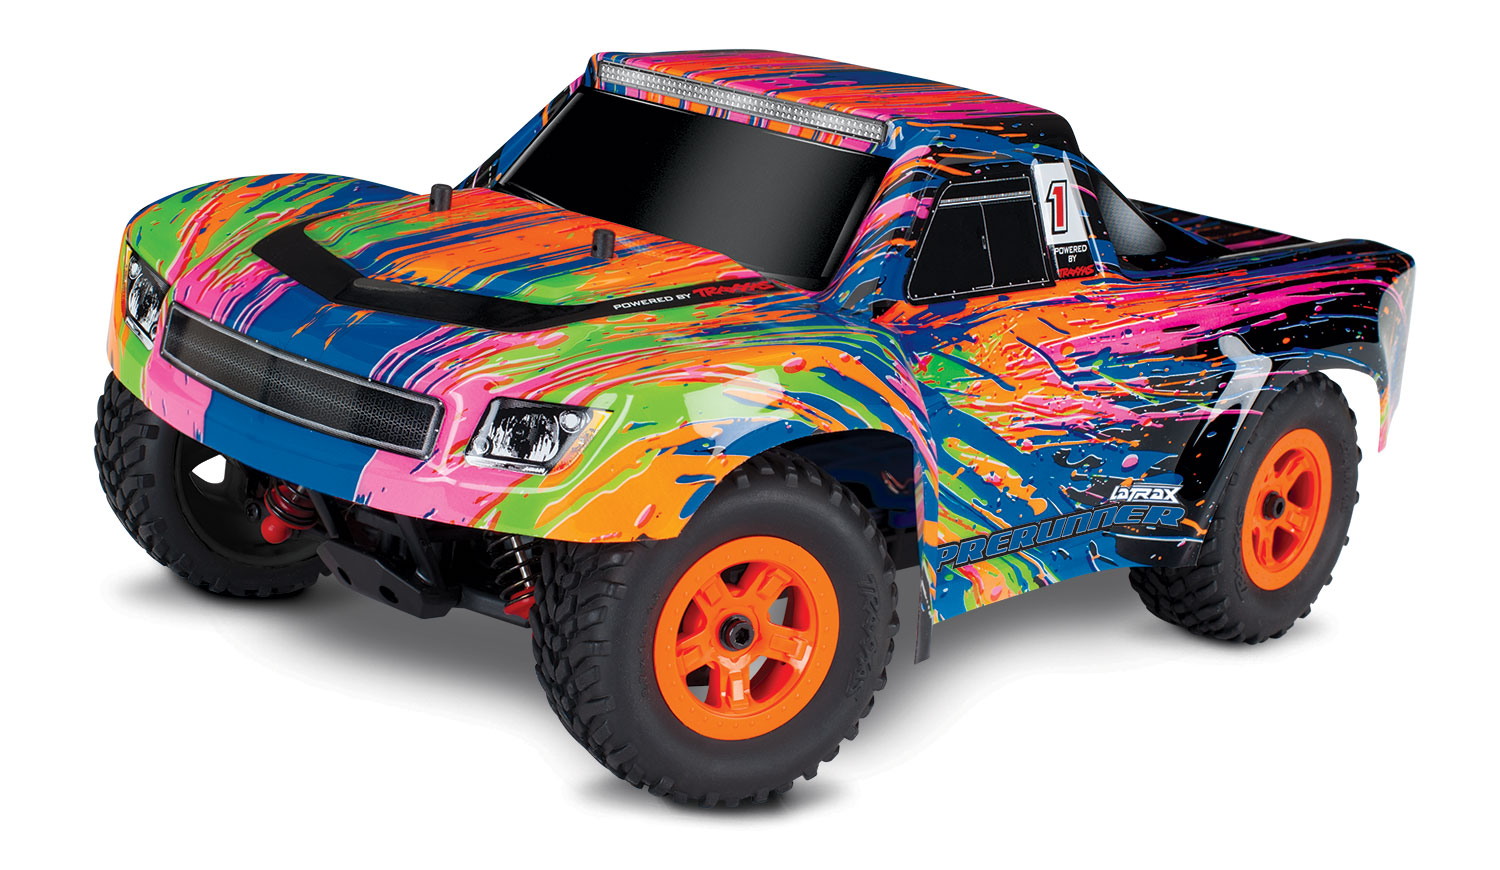 A New Graphics Option for the LaTrax Desert Prerunner 1/18 Off-road Truck